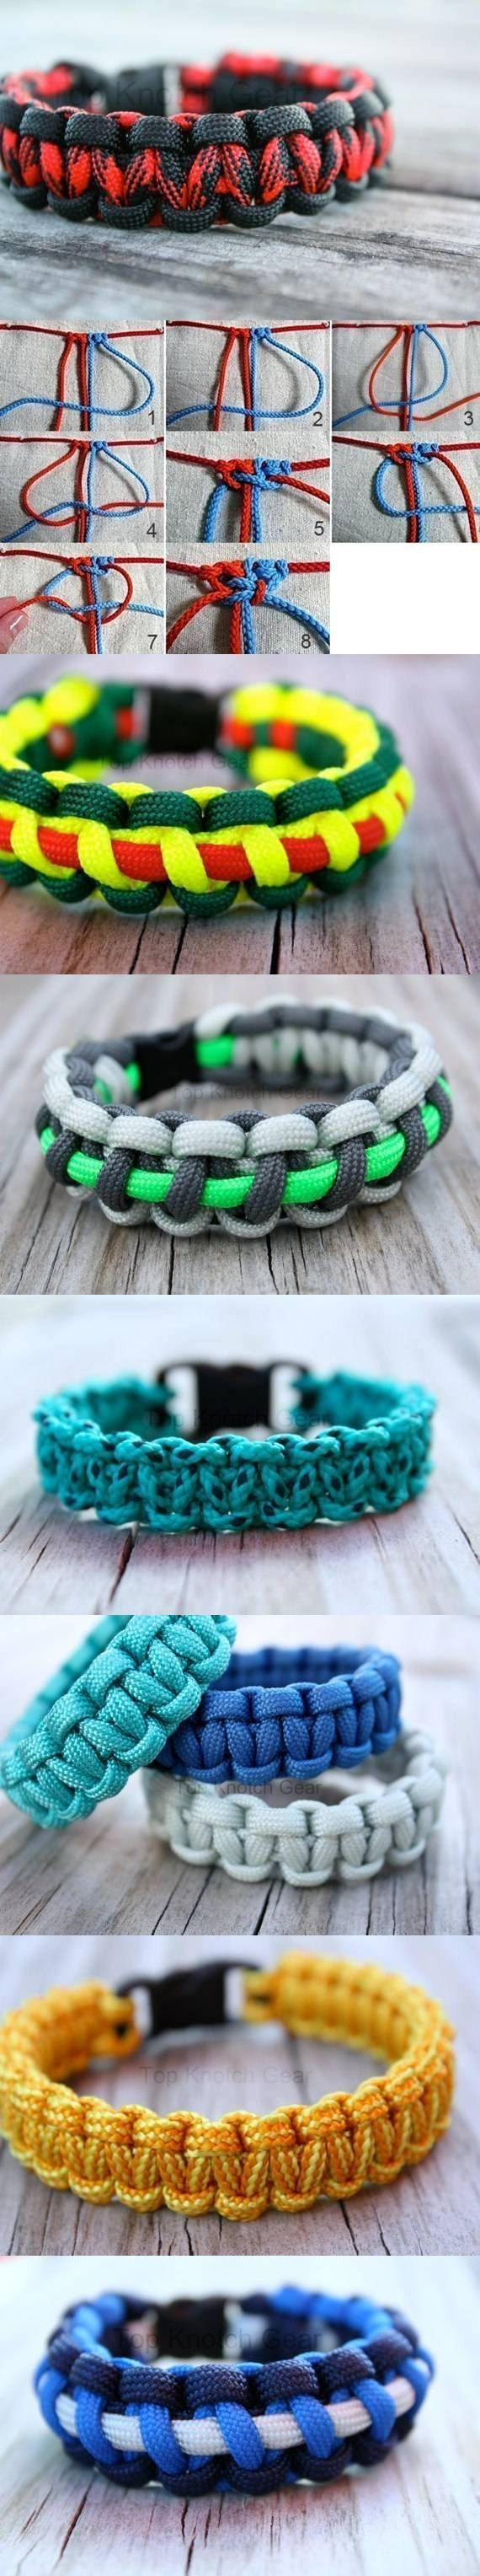 DIY Root Node Bracelets DIY Projects